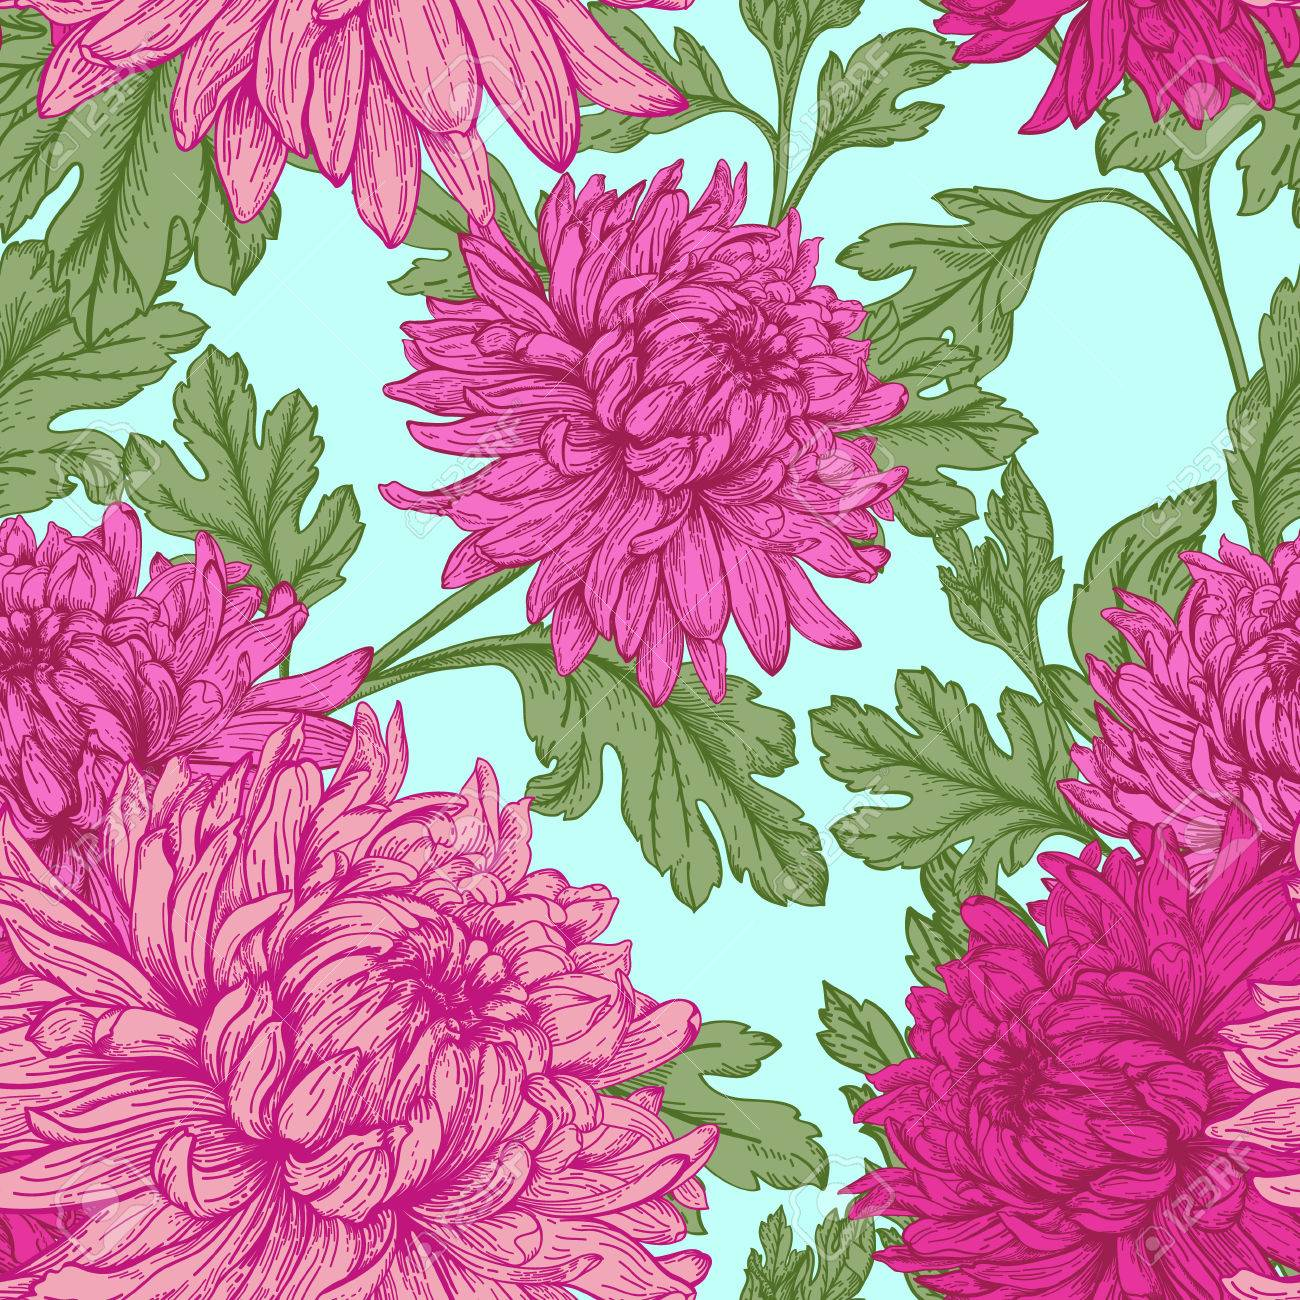 Pink floral seamless vector background floral hrysanthemum seamless - Vintage Seamless Floral Pattern With Flowers Chrysanthemum Vector Illustration Stock Vector 39922645